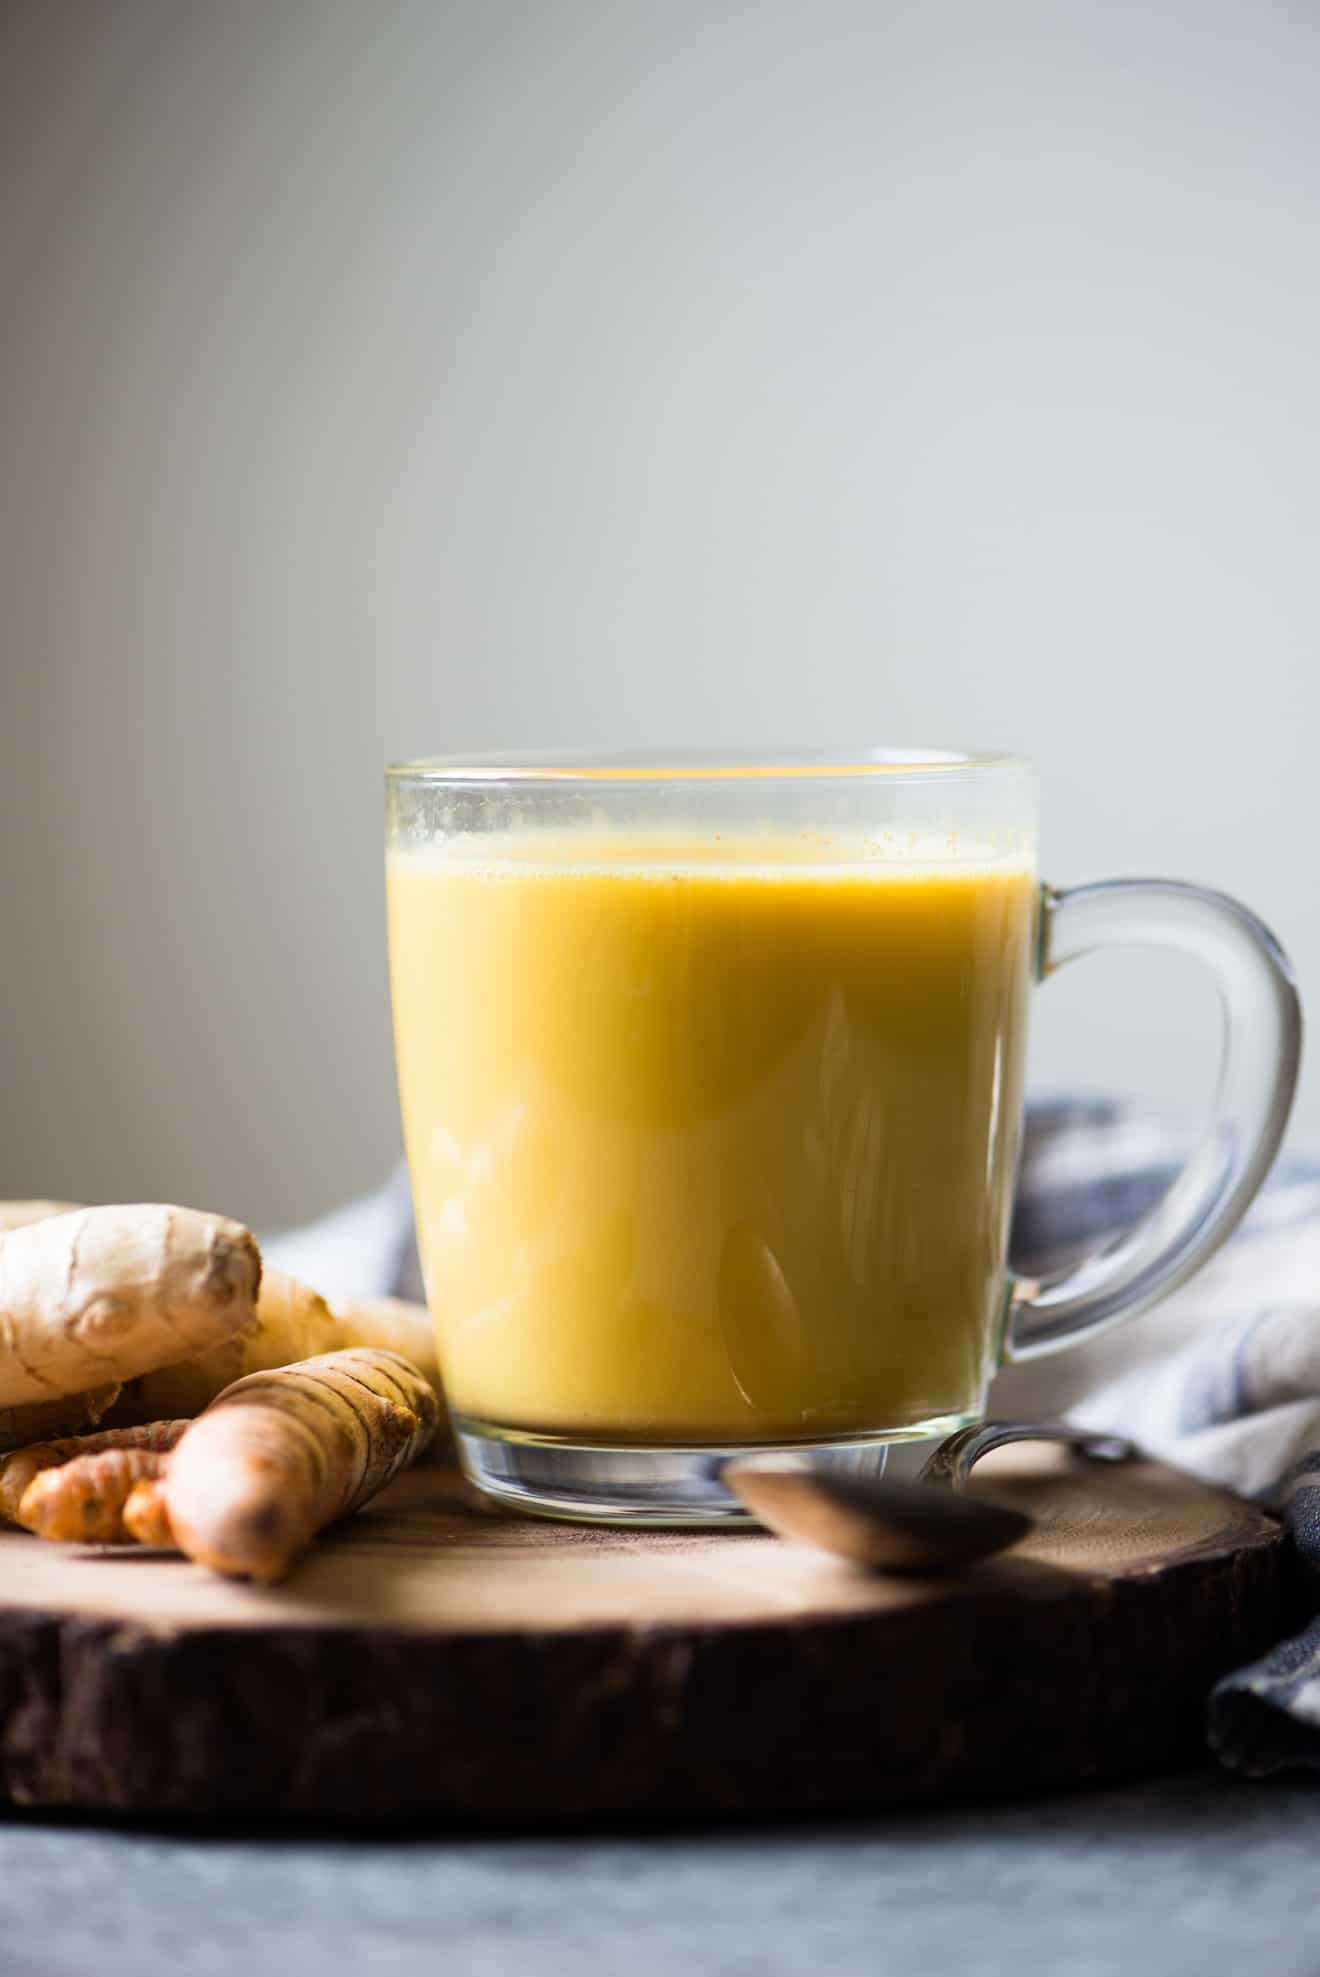 Golden Milk (or Turmeric Milk) is high in antioxidants and has anti-inflammatory properties. Making it at home is very easy. All you need is 5 basic ingredients.